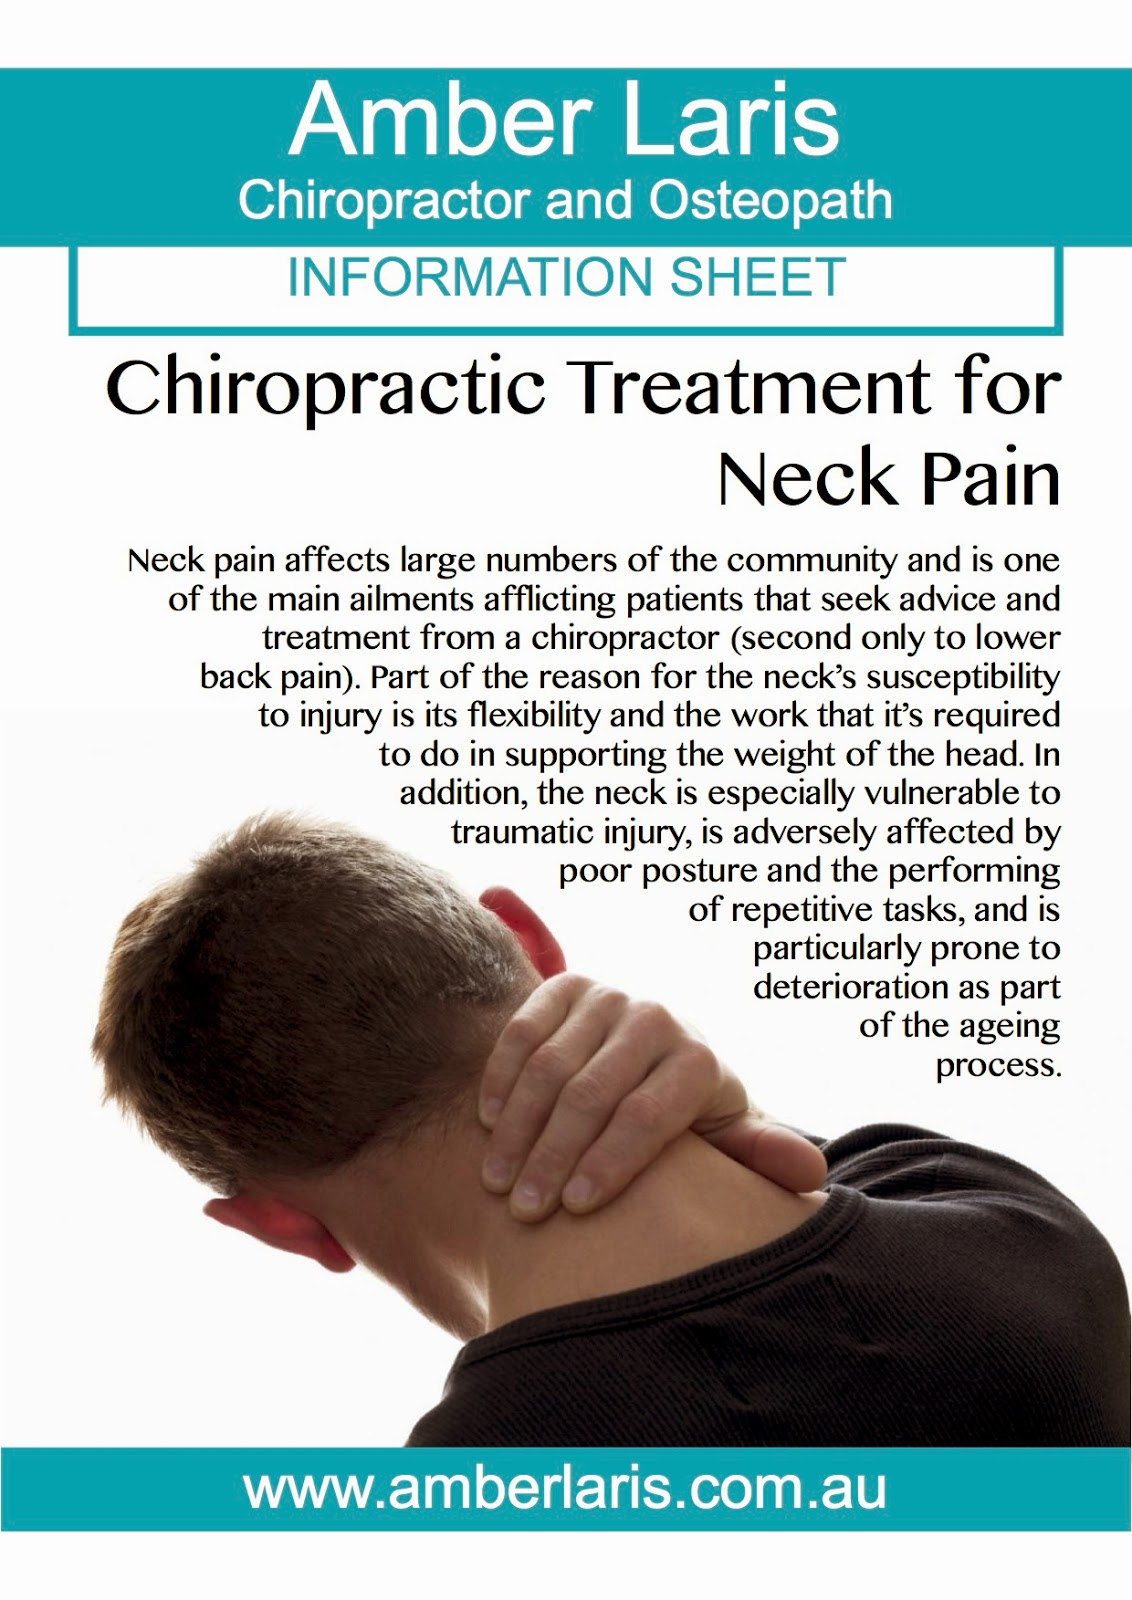 Neck pain can be successfully addressed through a course of chiropractic treatment